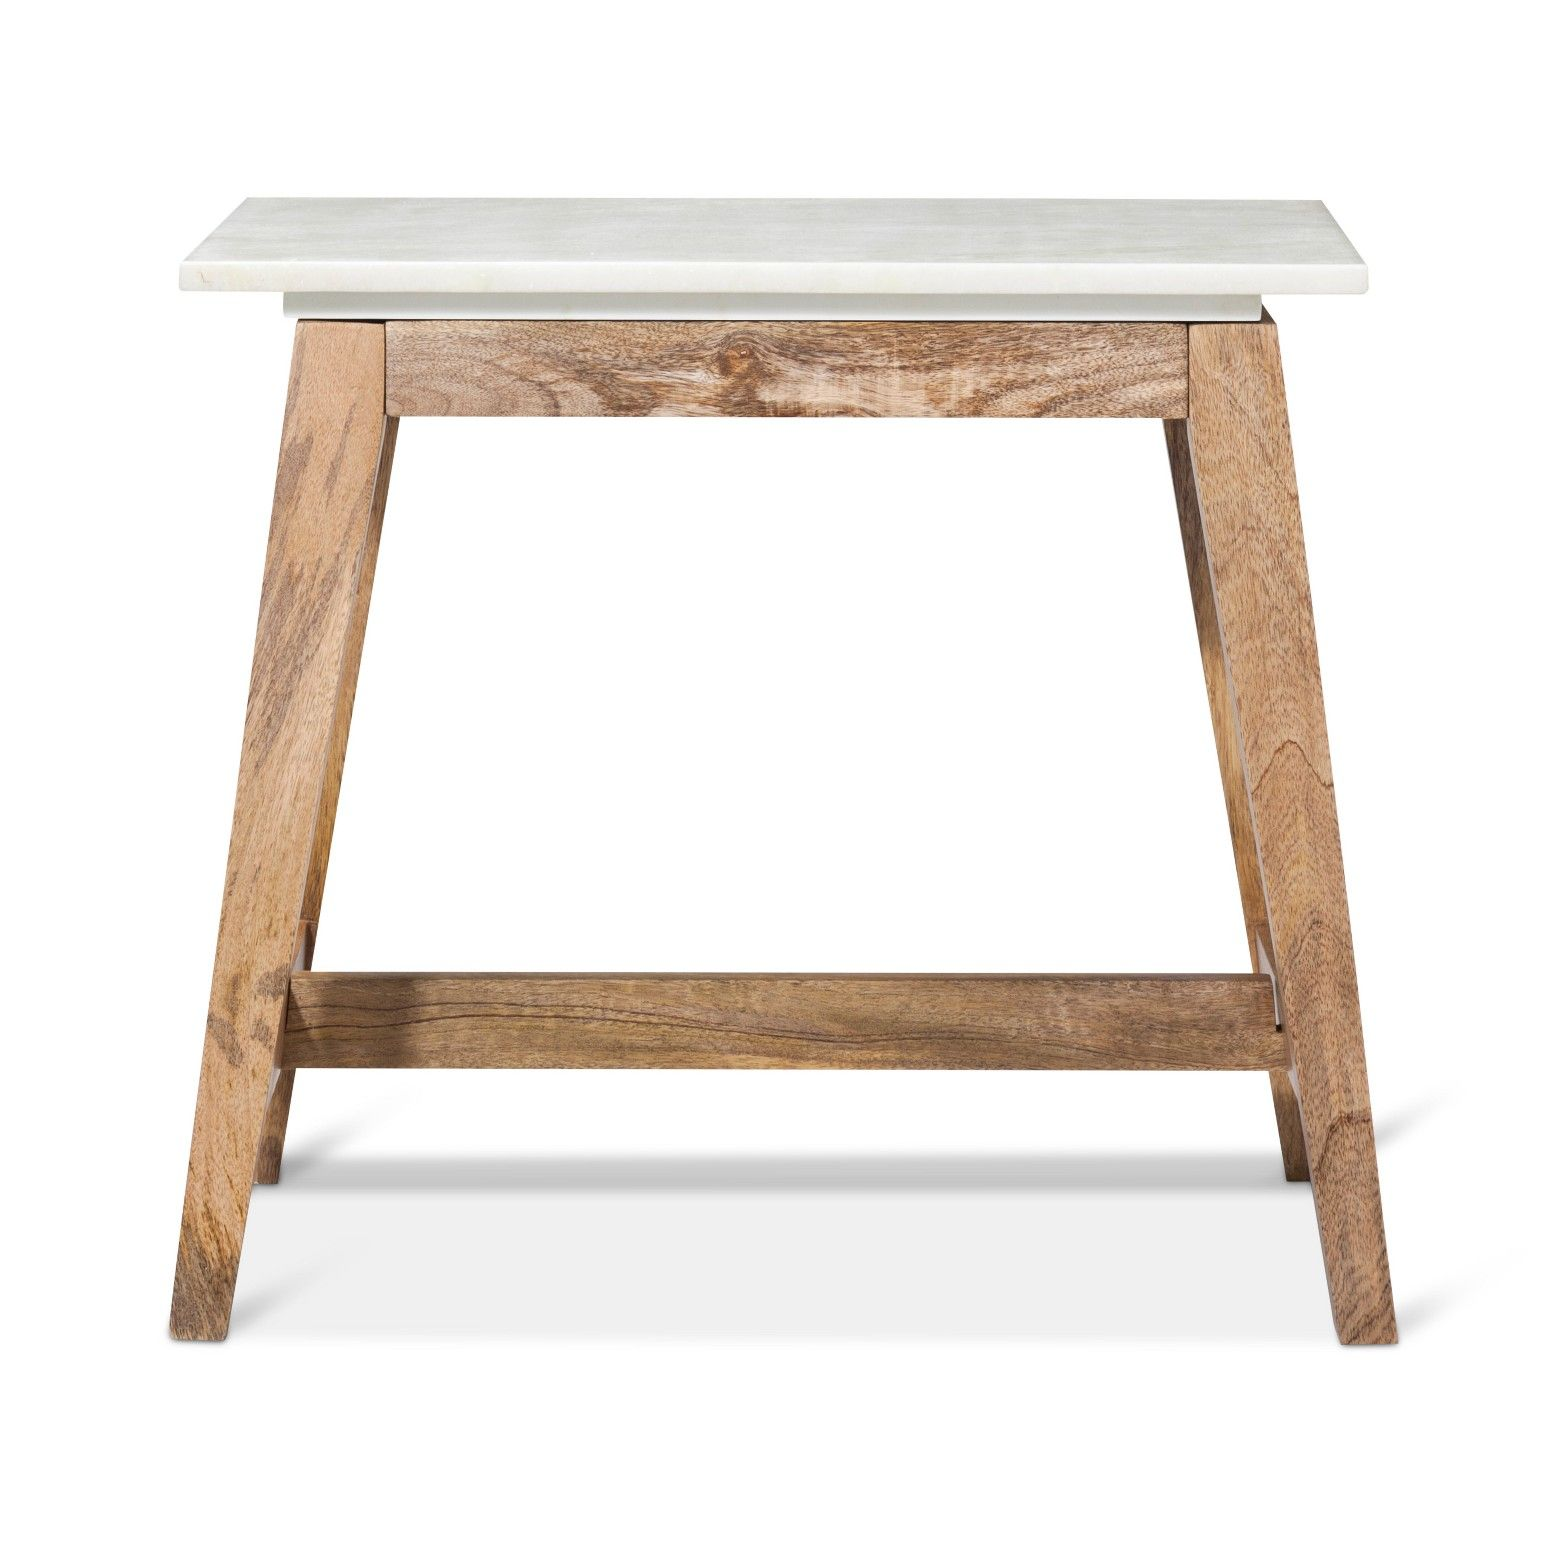 bring little rustic elegance into your home with the lanham accent threshold metal table wood top marble from this side easy piece mix small wheels red patio furniture ships